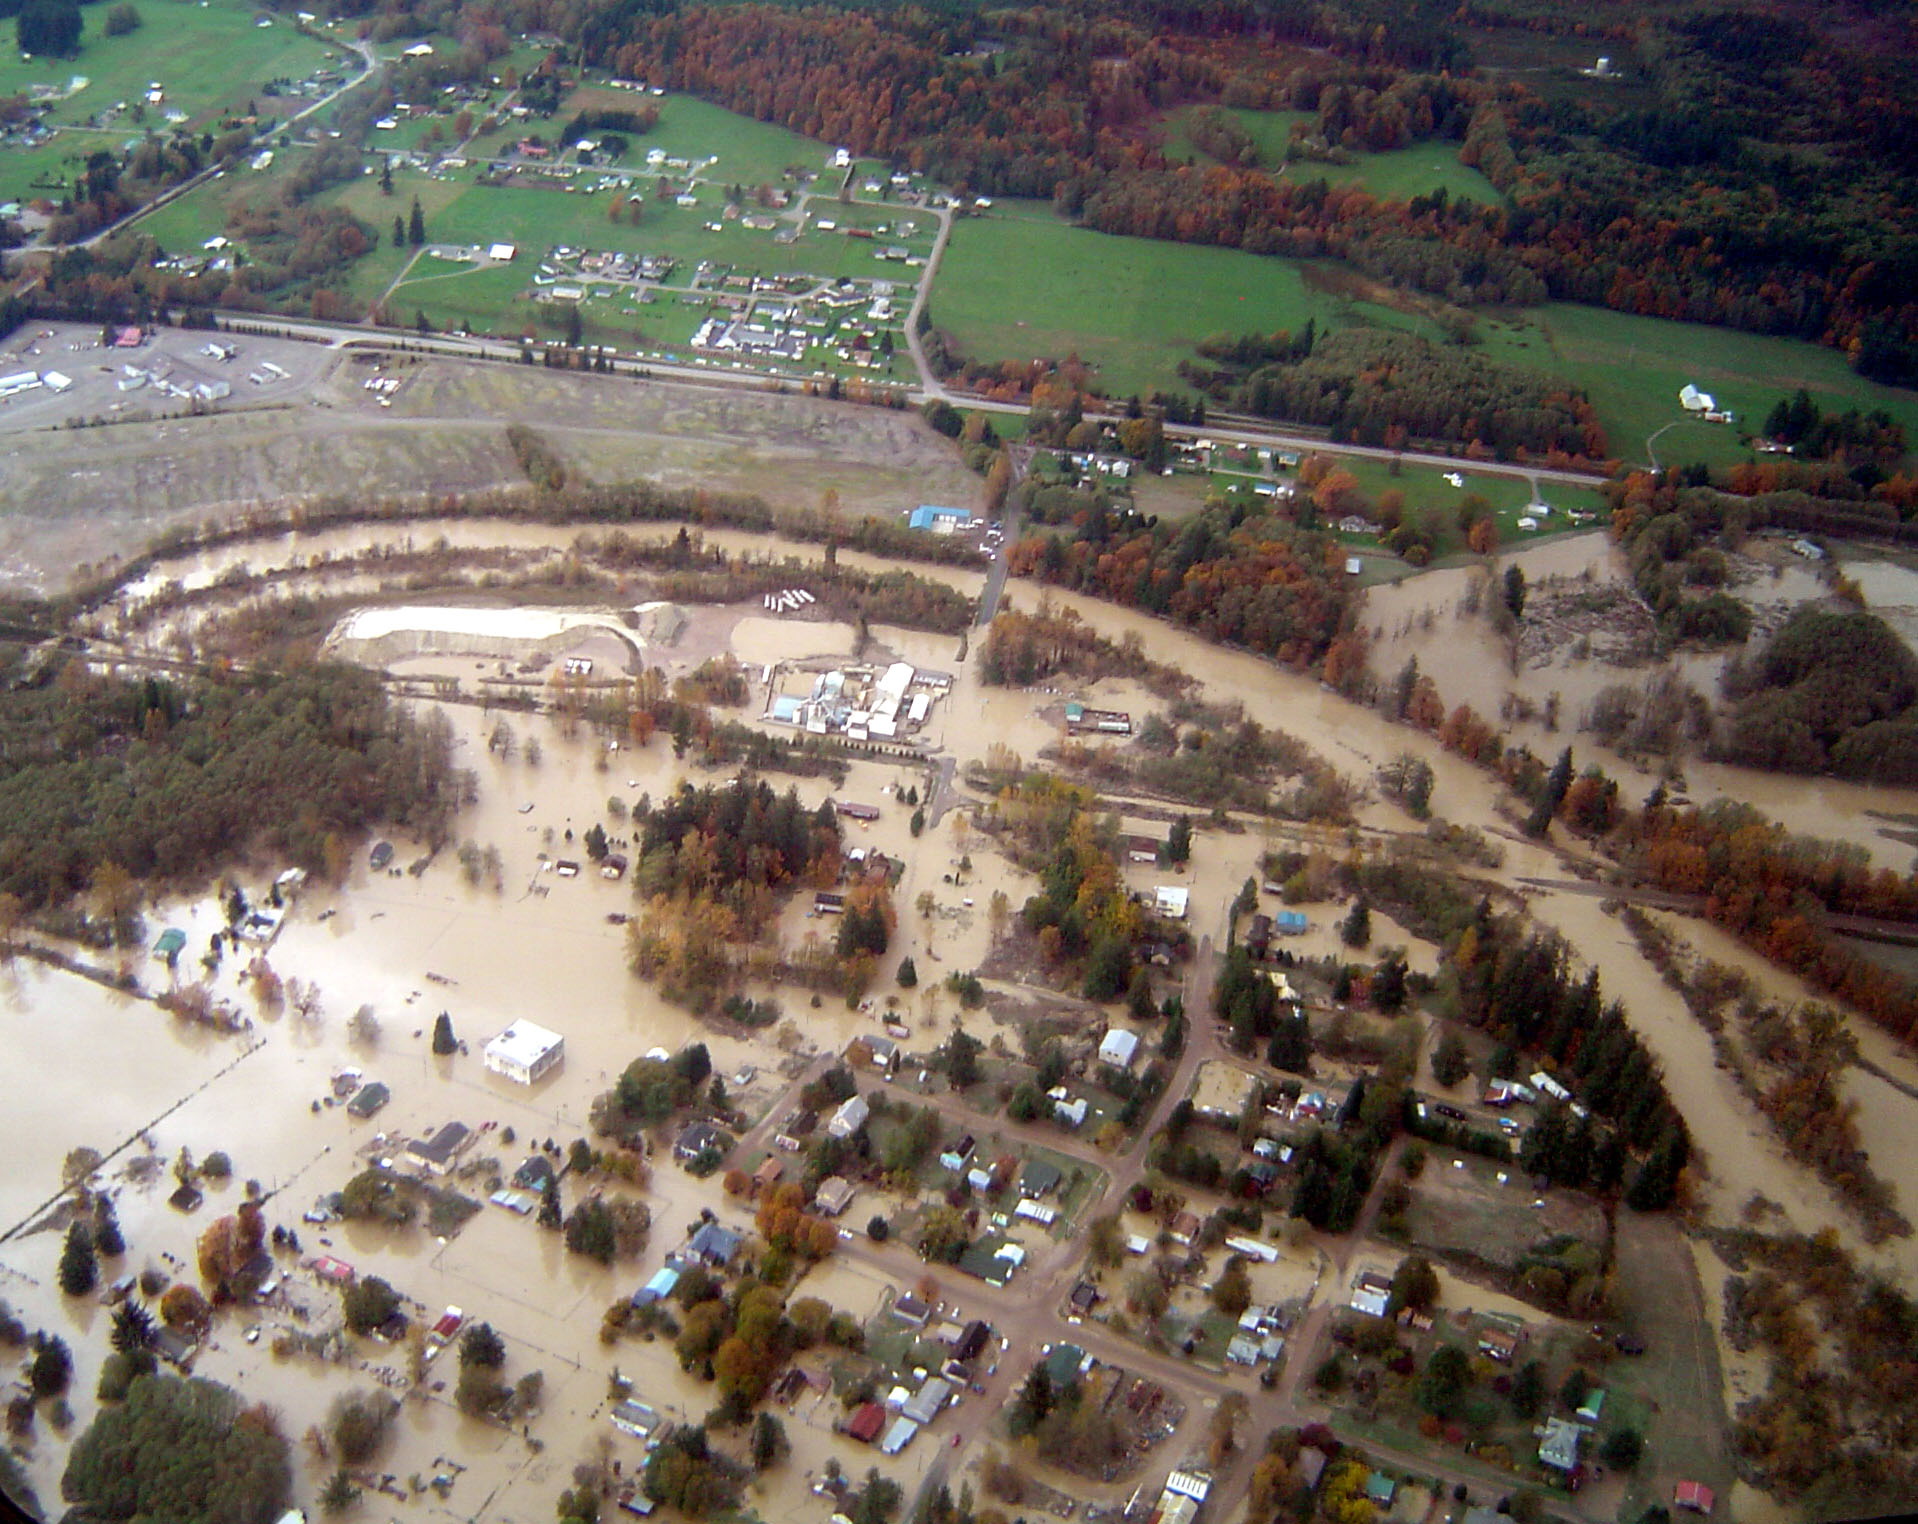 Flooding along the Skagit River in Washington State